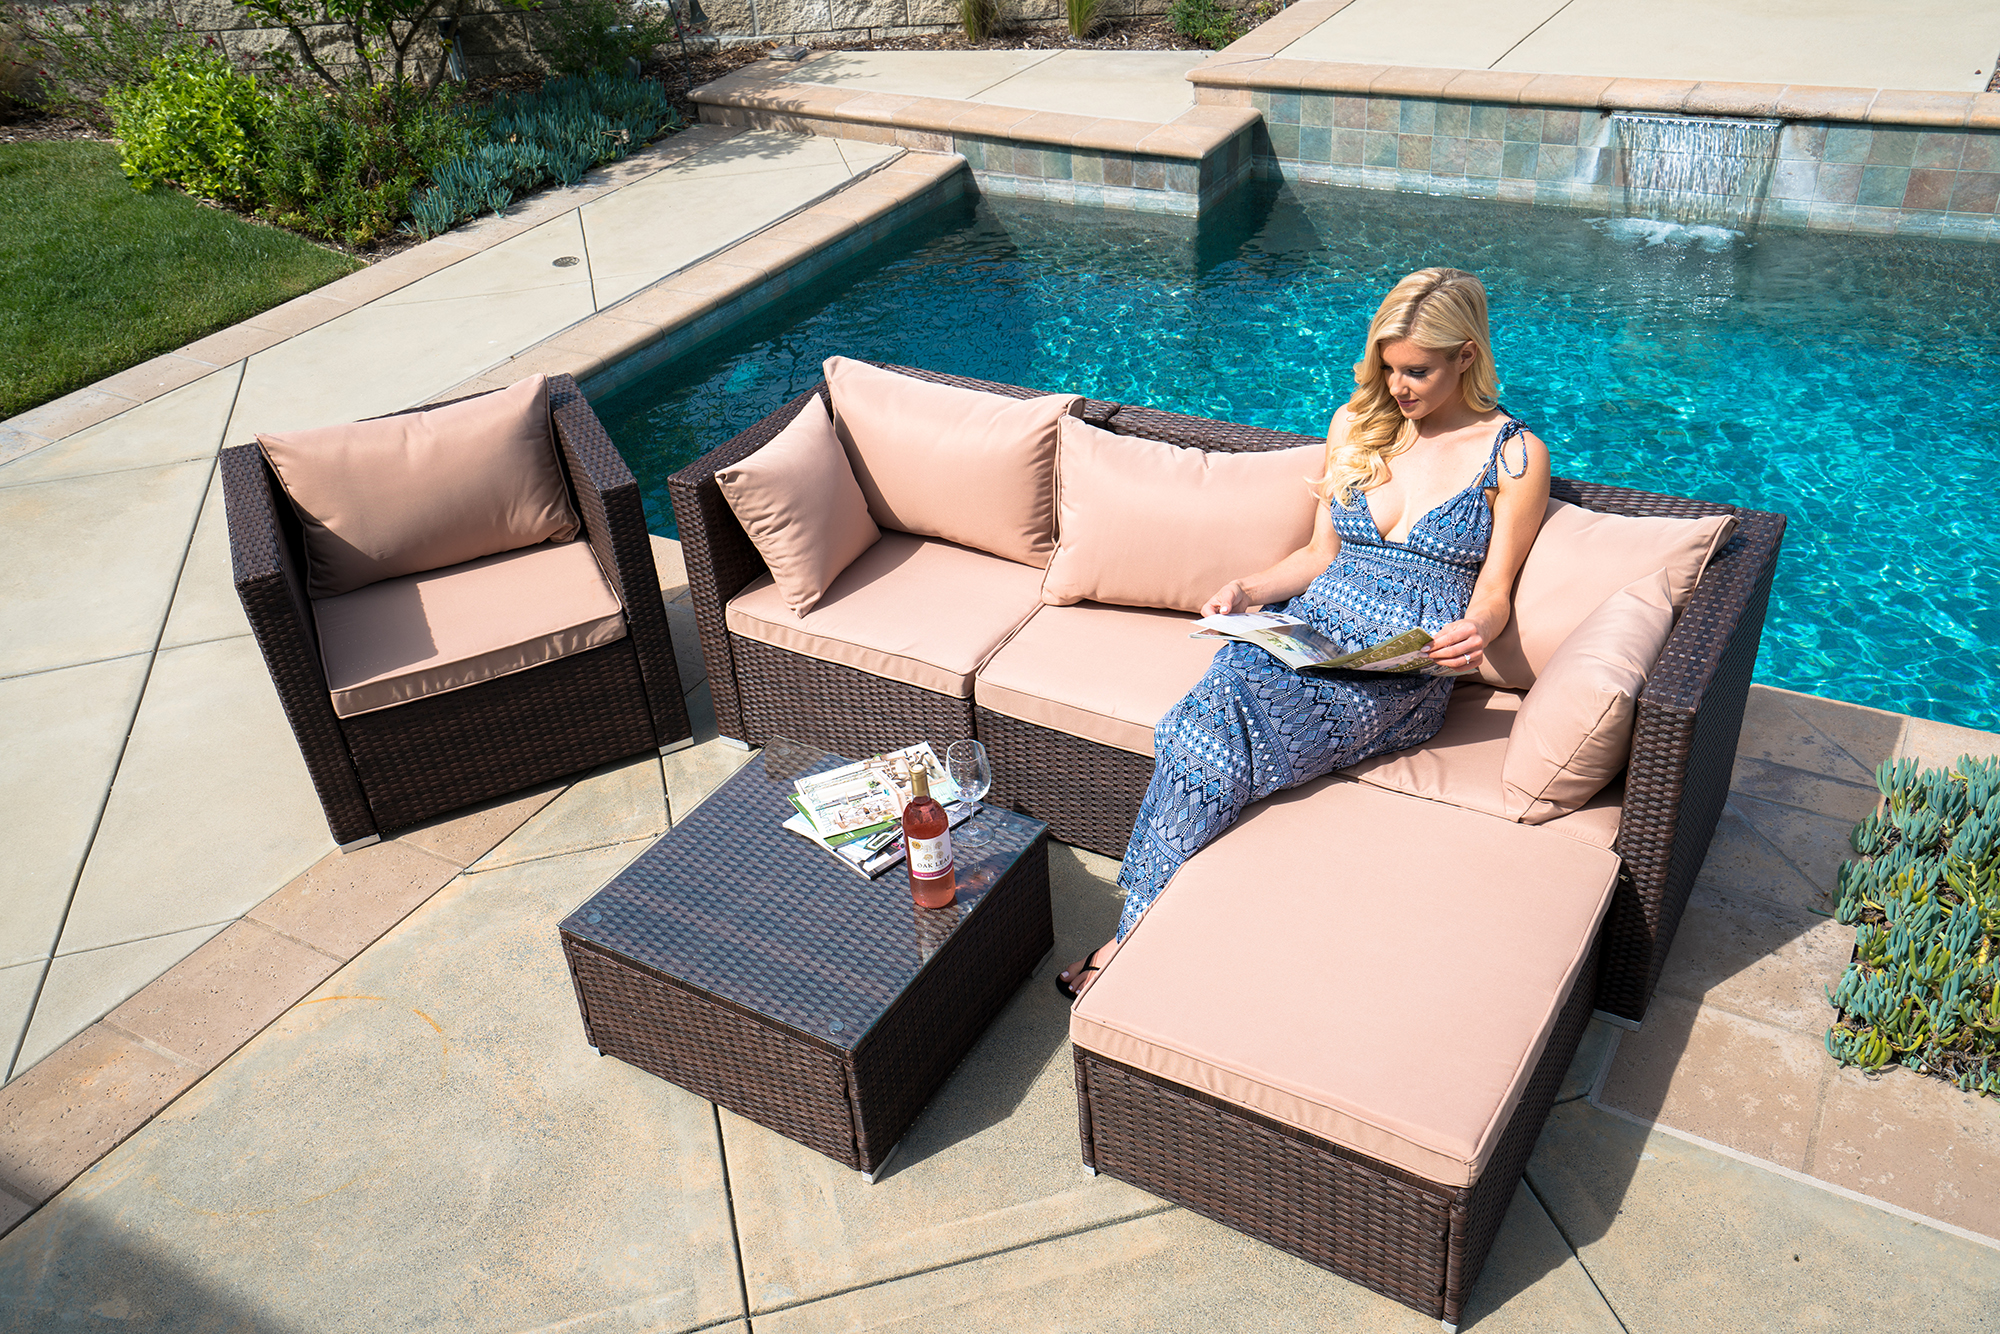 Marvelous Details About 6Pc Outdoor Patio Furniture Sectional Rattan Wicker Sofa Chair Couch Set Chaise Gmtry Best Dining Table And Chair Ideas Images Gmtryco